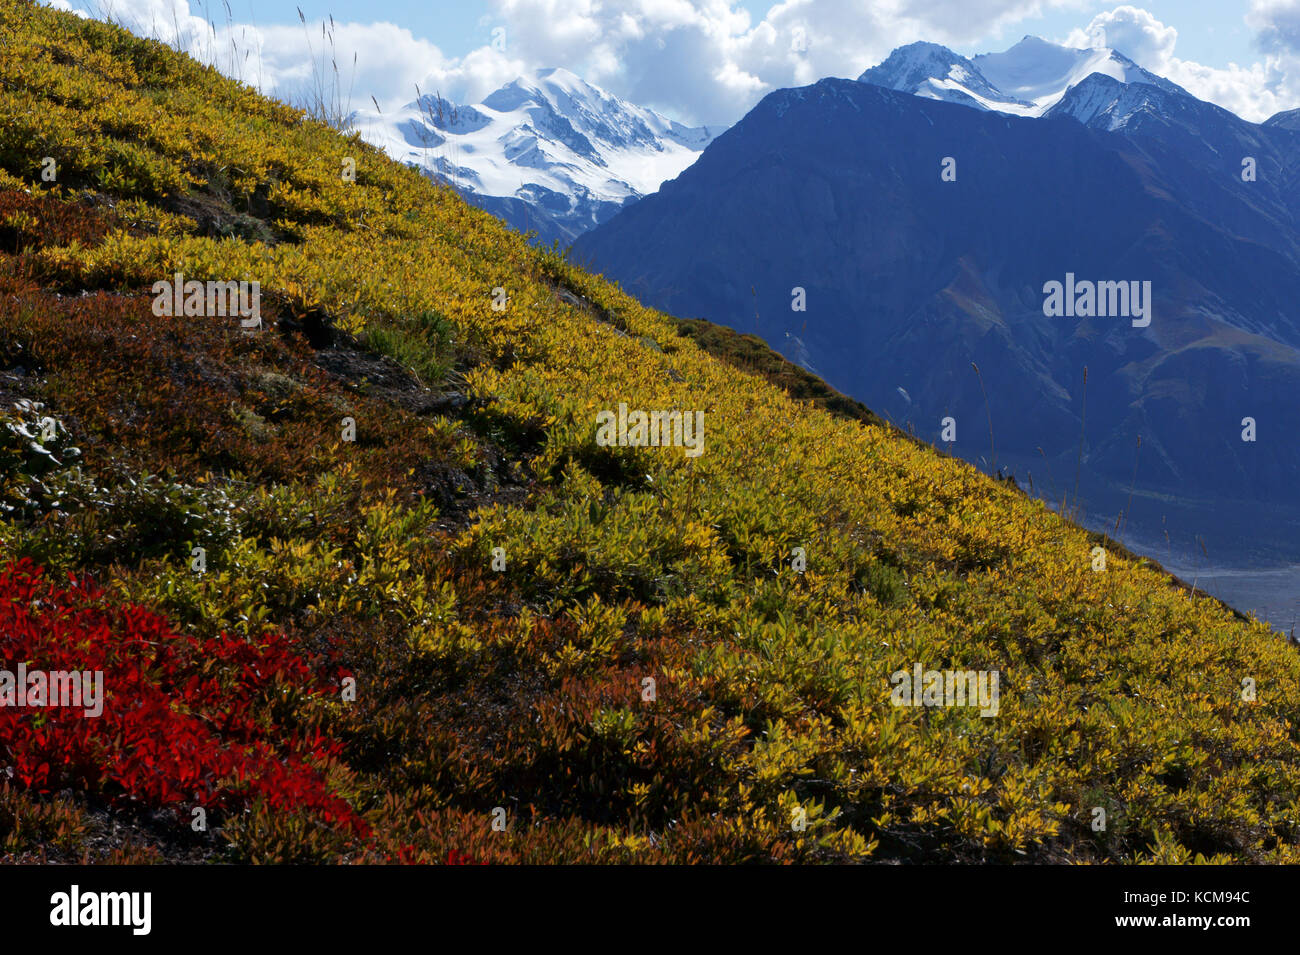 Alpine tundra hillside withdwarf willow and bearberry  leaves in fall colors with glaciated mountains above Slim river valley, Sheep creek trail inShe Stock Photo